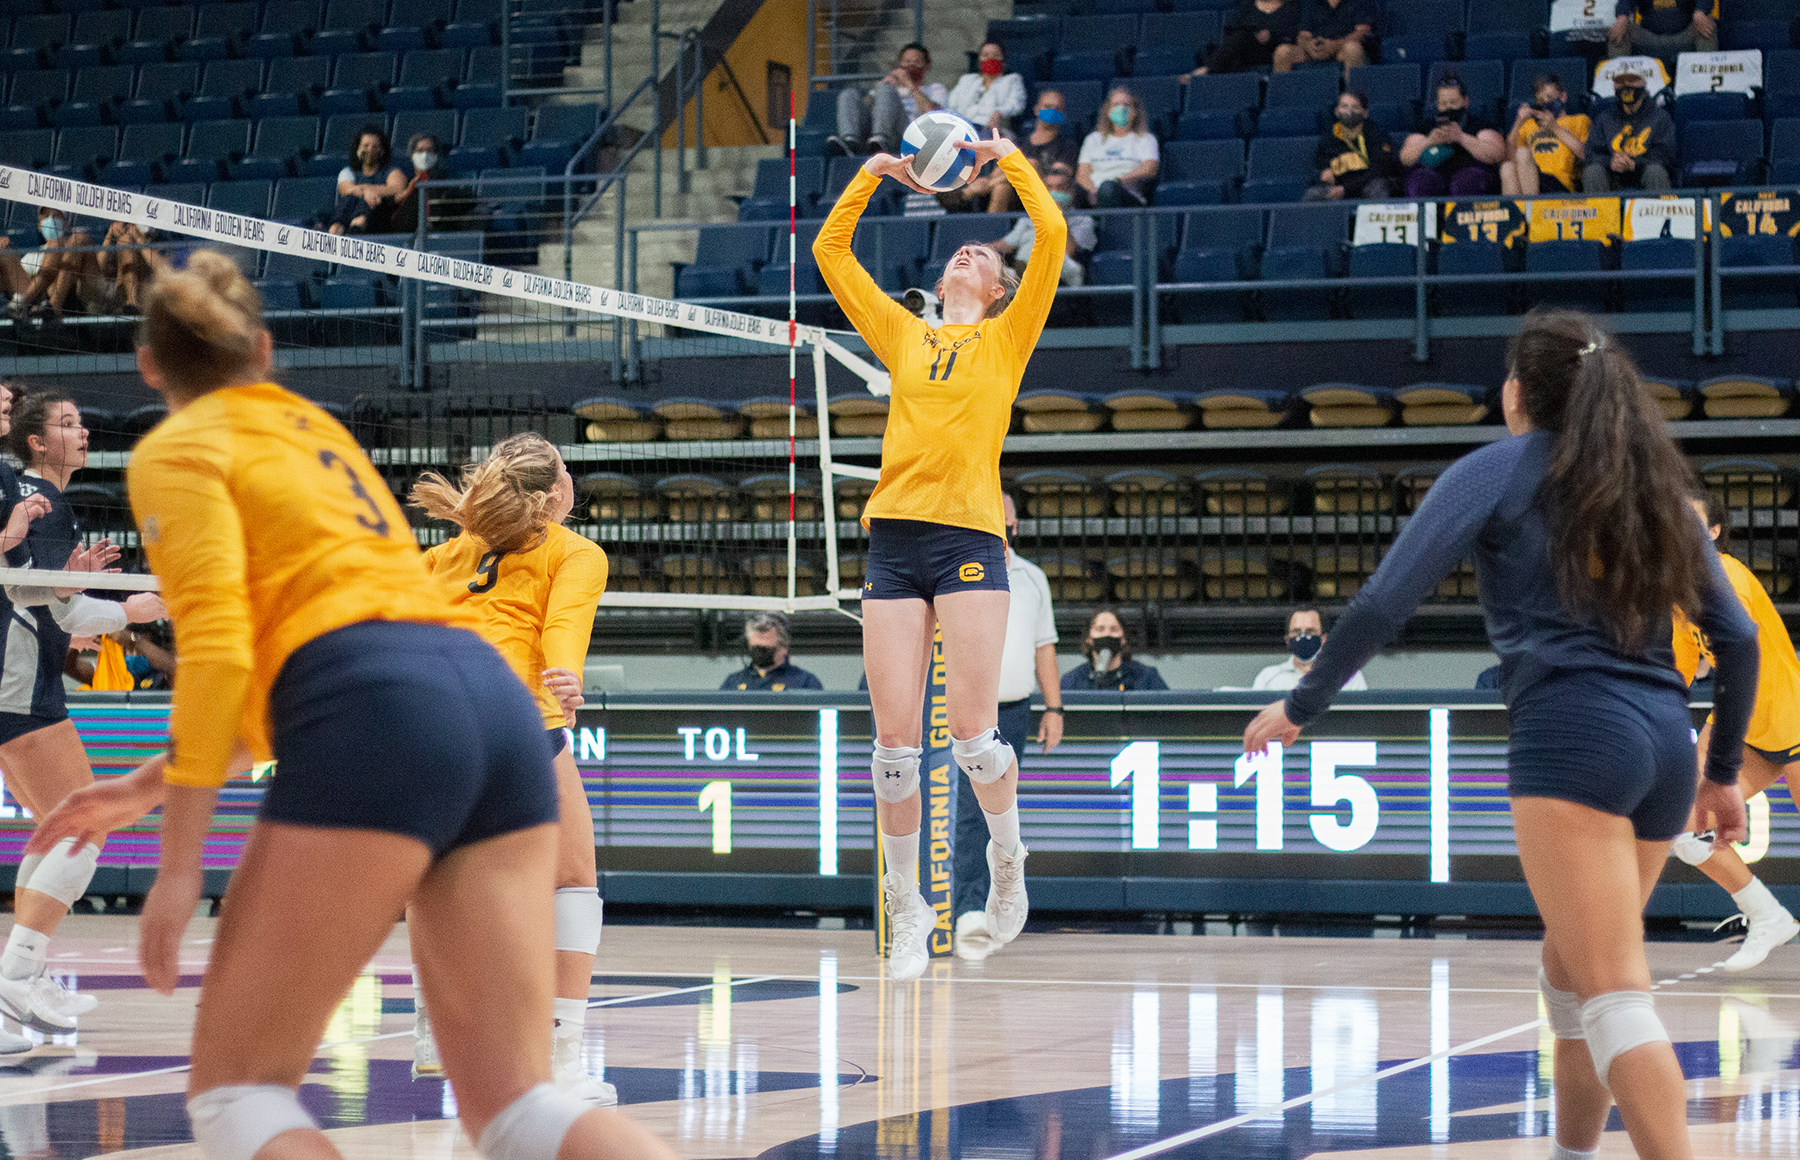 Photo of a Cal volleyball game